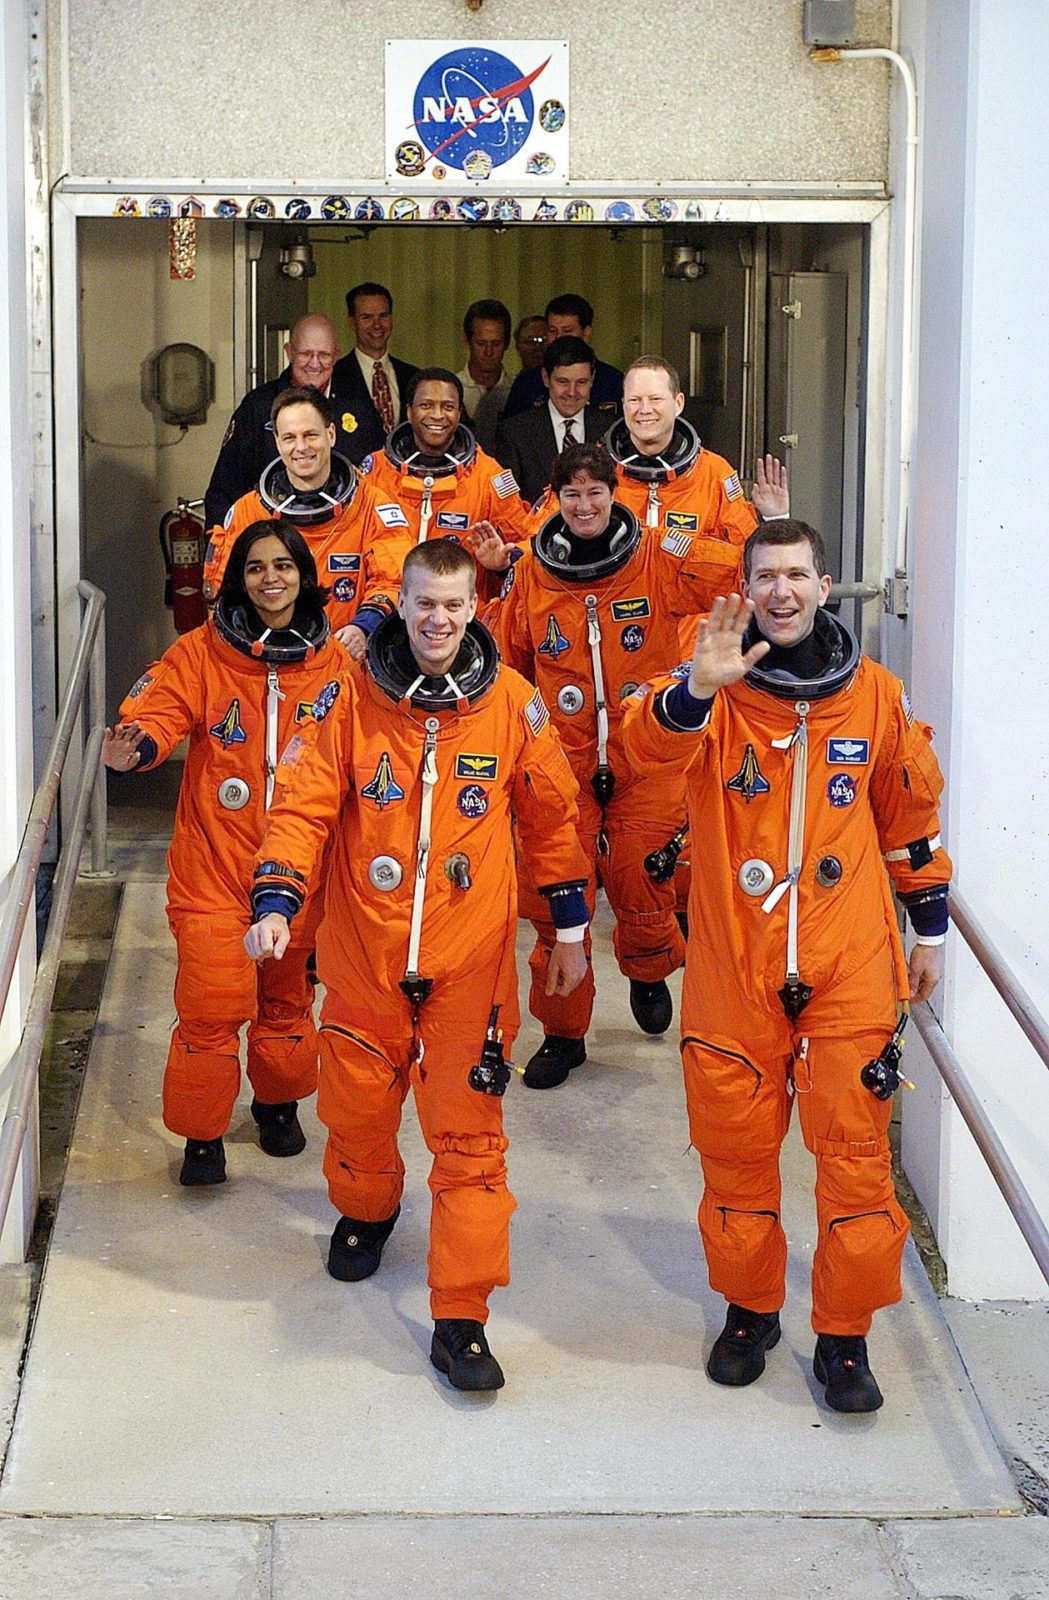 """KENNEDY SPACE CENTER, FLA. - .  The STS-107 crew, waving to onlookers, exits the Operations and Checkout Building on their way to Launch Pad 39A for liftoff.  Leading the way are Pilot William """"Willie"""" McCool (left) and Commander Rick Husband (right).  Following in the second row are Mission Specialists Kalpana Chawla (left) and Laurel Clark; in the rear are Payload Specialist Ilan Ramon, Payload Commander Michael Anderson and Mission Specialist David Brown.  Ramon is the first astronaut from Israel to fly on a Shuttle. The 16-day mission is devoted to research and will include more than 80 experiments that will study Earth and space science, advanced technology development, and astronaut health and safety. The payload on Space Shuttle Columbia includes FREESTAR (Fast Reaction Experiments Enabling Science, Technology, Applications and Research) and the SHI Research Double Module (SHI/RDM), known as SPACEHAB.  Experiments on the module range from material sciences to life sciences.  Liftoff is scheduled for 10:39 a.m. EST.  [Photo courtesy of Scott Andrews] KSC-03pd0109"""